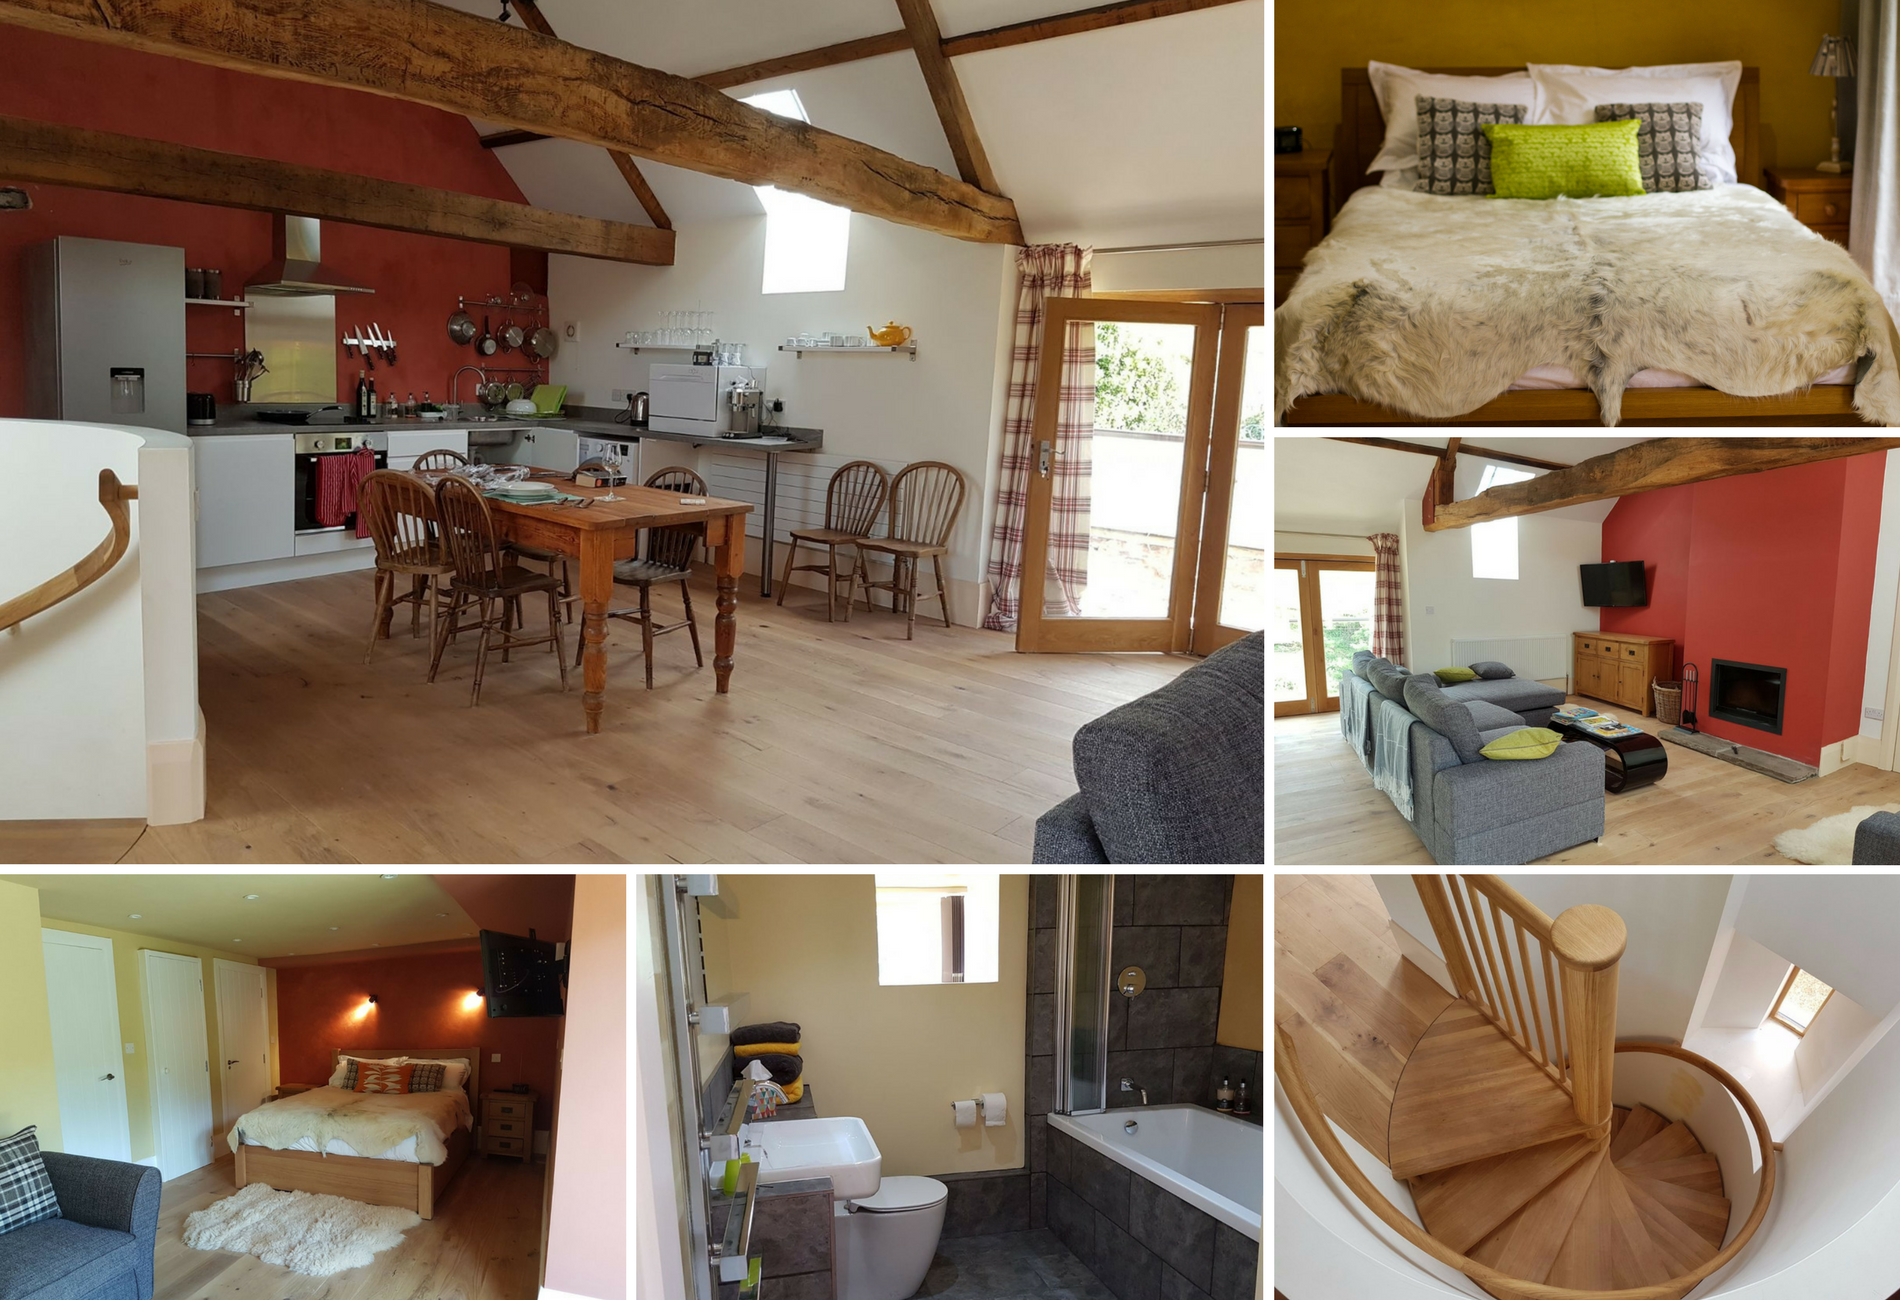 Yaffle Barn New Court Holiday Cottages luxury self catering accommodation Usk, Monmouthshire South Wales